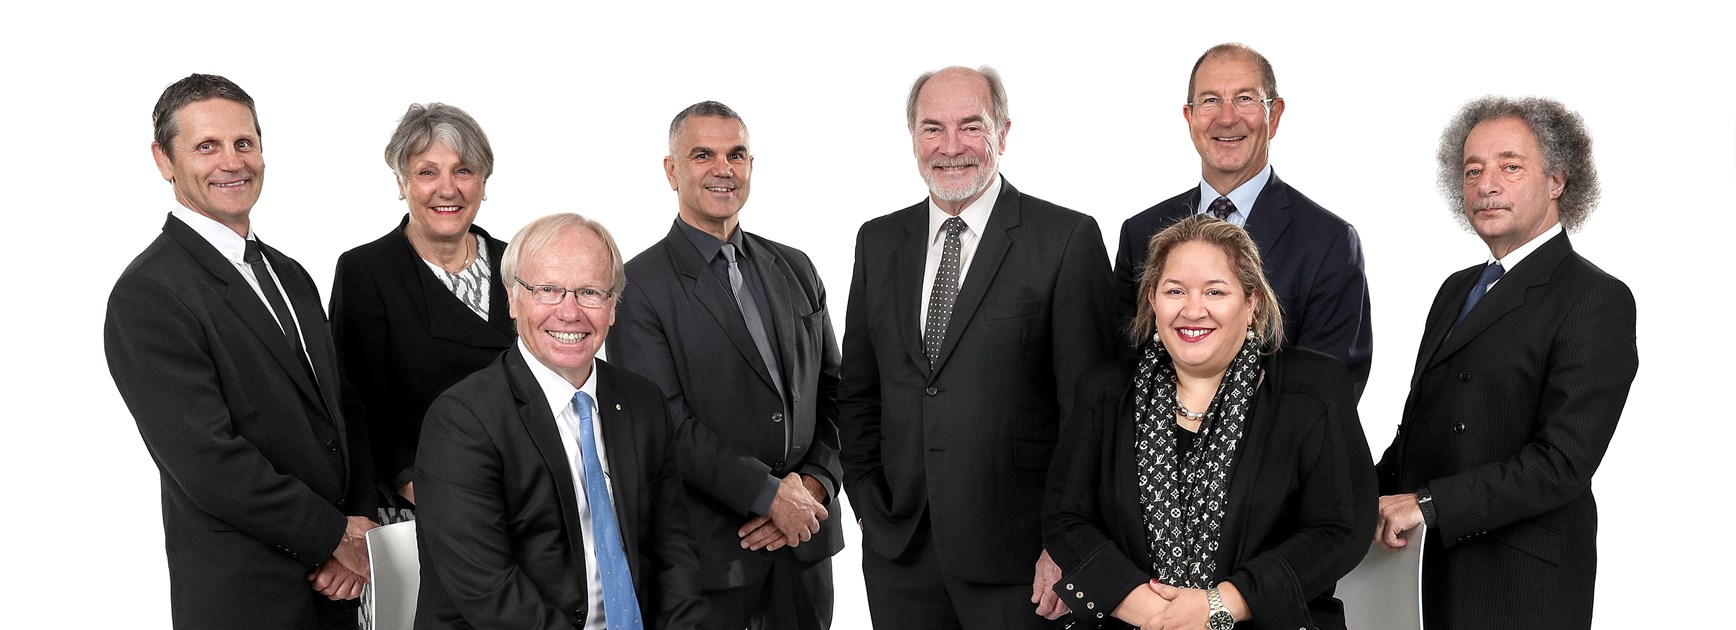 The ARL Commissioners.